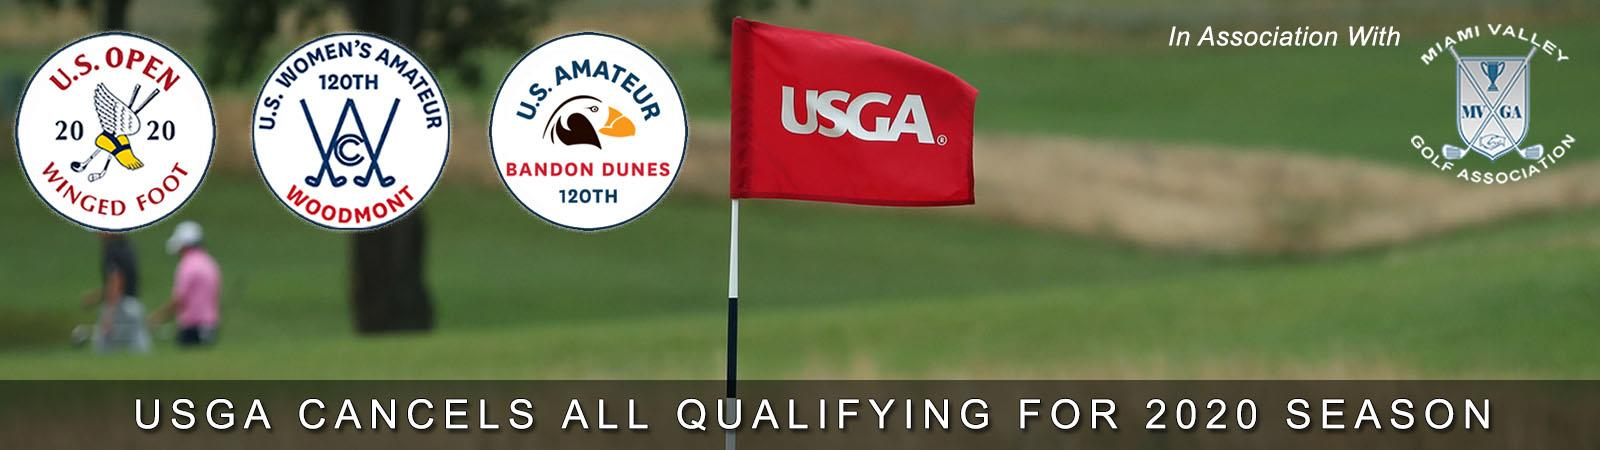 2020-05-19_USGA_Cancels_Qualifying